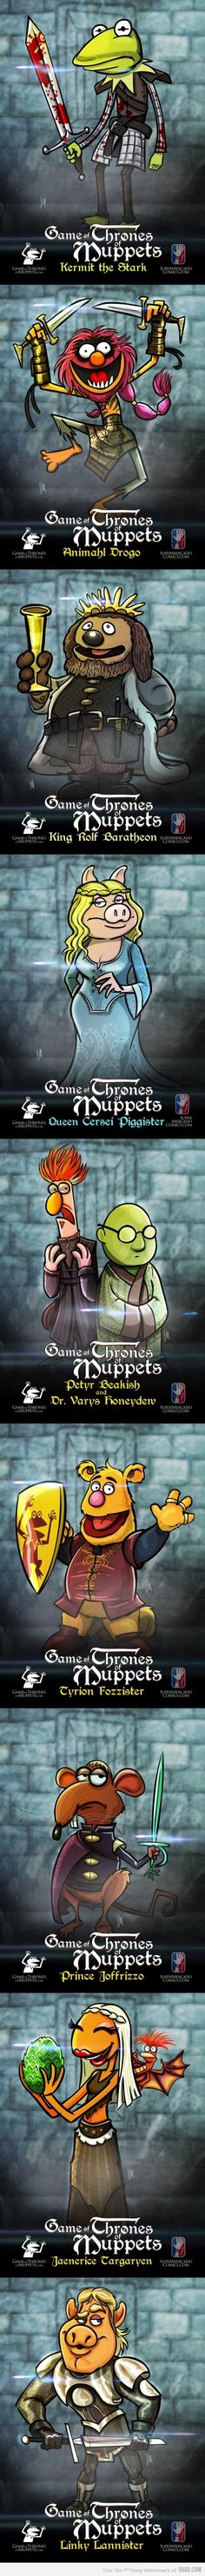 Game of Thrones Muppets!  Animal is probably the best one here...